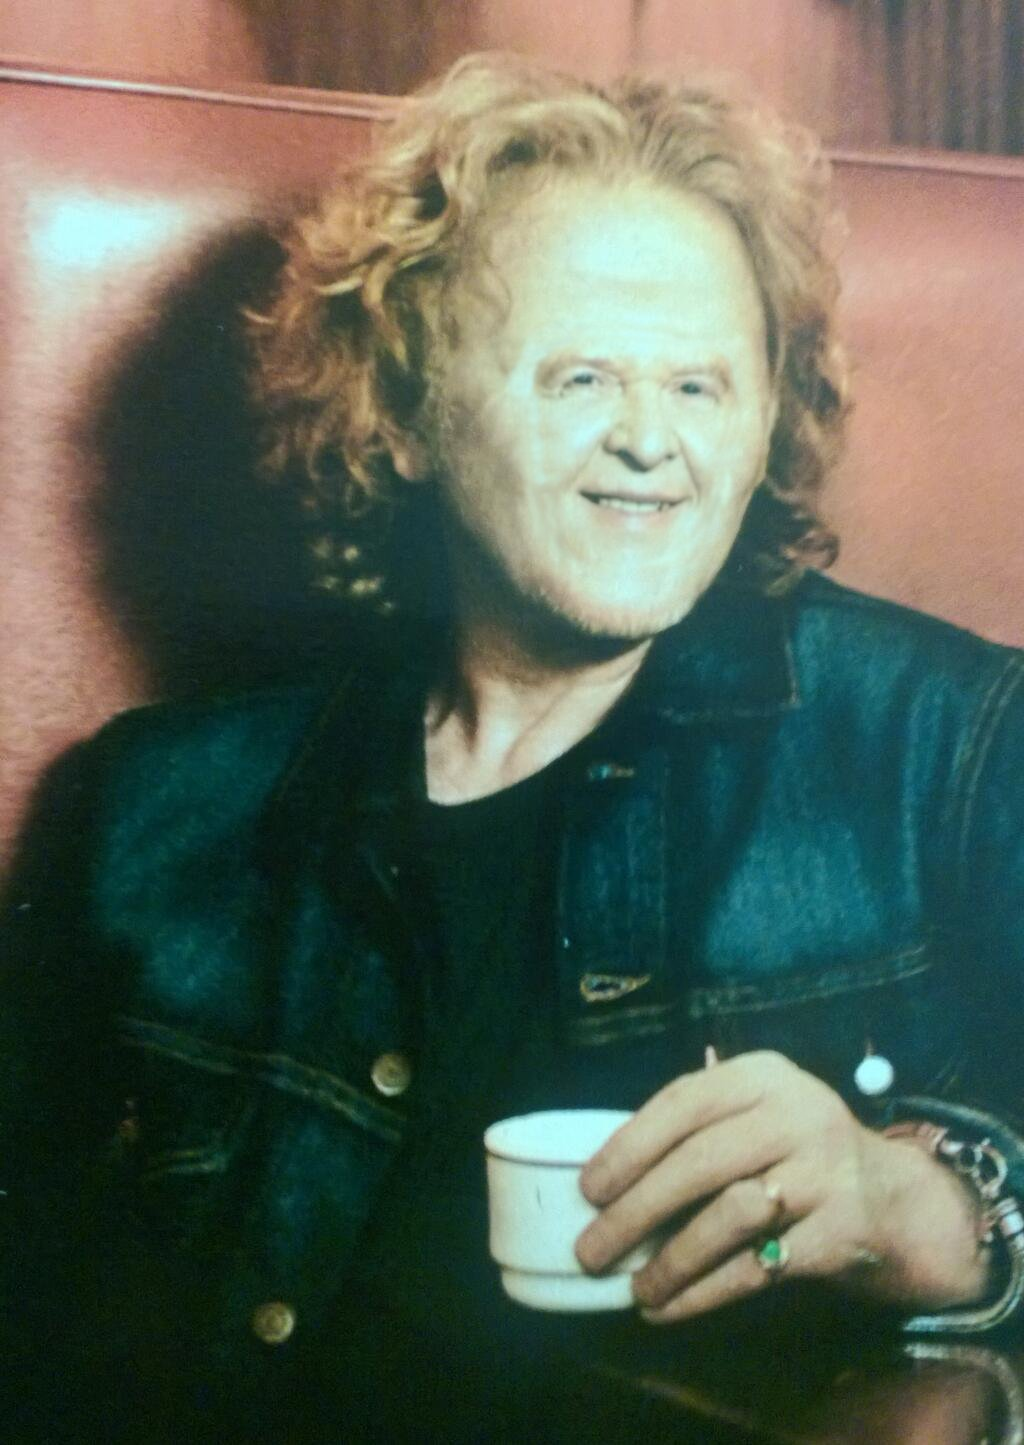 Small Kitchen Small Faced Celebrities - Mick Hucknall The Poke